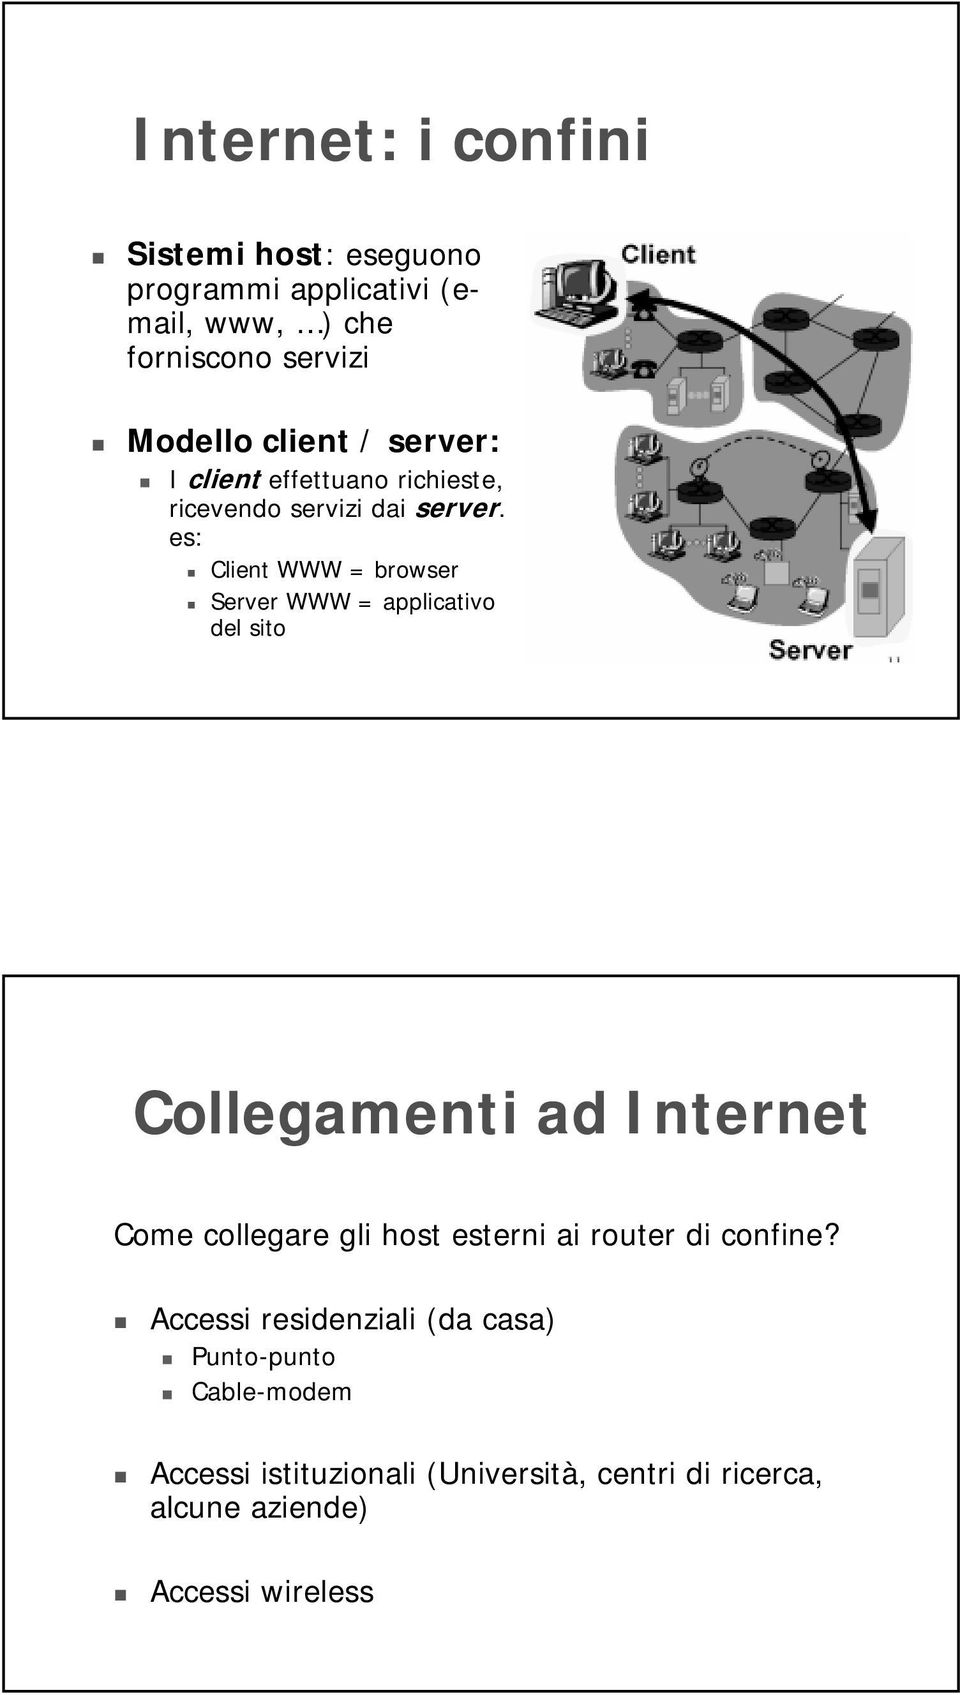 es: Client WWW = browser Server WWW = applicativo del sito Collegamenti ad Internet Come collegare gli host esterni